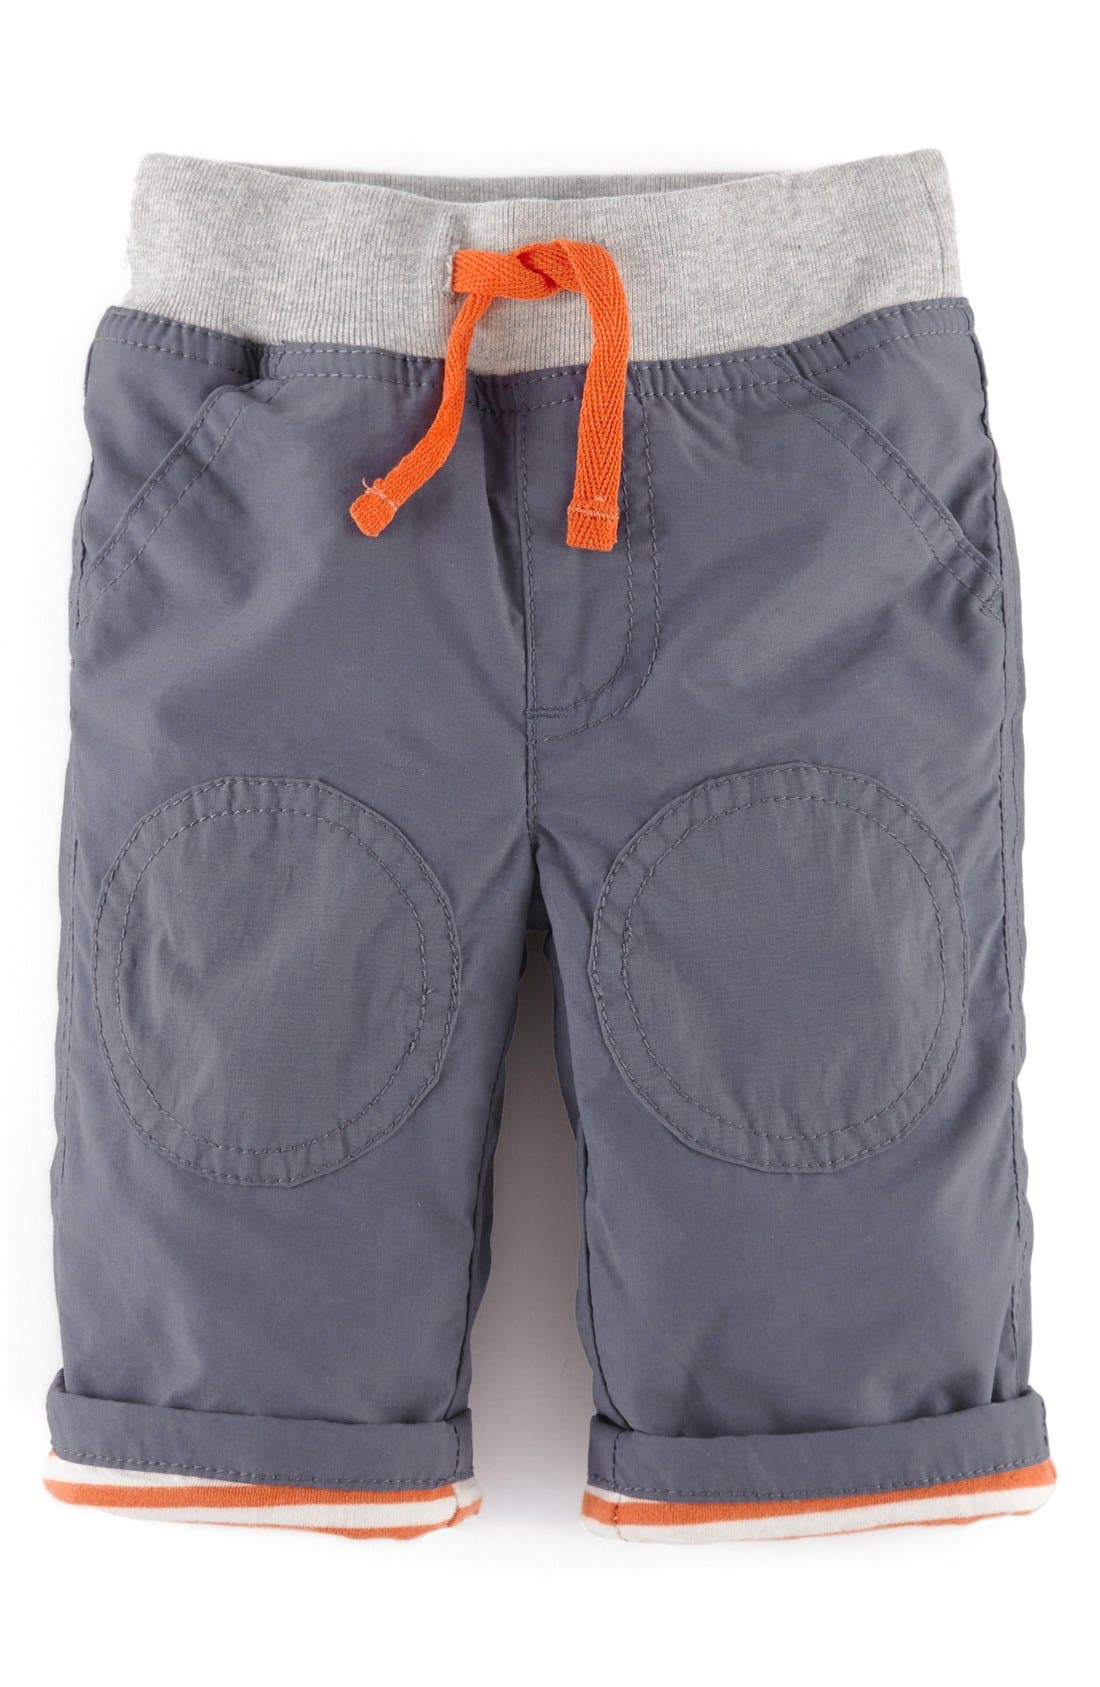 Alternate Image 1 Selected - Mini Boden Cozy Knee Patch Trousers (Baby)